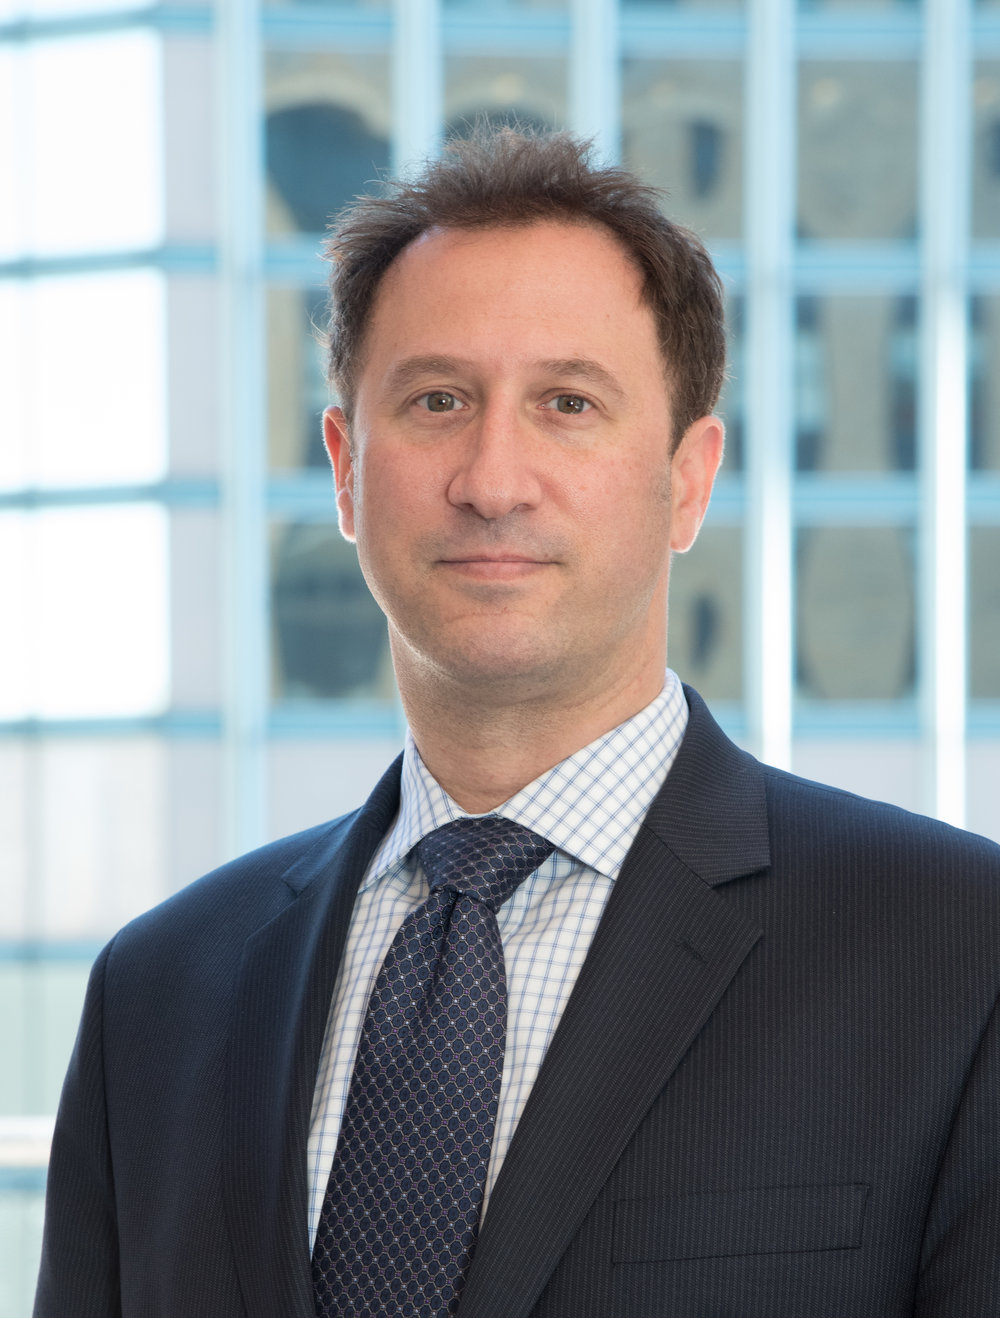 STUART T. BASSEL - Stuart T. Bassel, a partner of the firm, concentrates his practice in commercial leasing matters, representing both landlords and tenants in the preparation and negotiation of complex office and retail leases, licenses and all related agreements.Prior to joining the firm, Mr. Bassel was an associate with the firm of Goldberg Weprin & Ustin LLP and prior to that was General Counsel, Vice President of Administration of Sam Seltzer's Steakhouses of America, a restaurant operating company in Florida.While in law school, Mr. Bassel served as an intern for Ernst & Young, LLP, and continued as a Senior Tax Consultant for several years after graduating from law school.EDUCATIONMr. Bassel received his Juris Doctor degree from New York Law School and a Bachelor of Commerce degree from Concordia University in Montreal, Canada.ADMISSIONSMr. Bassel is a member of the New York State Bar Association. He is admitted to practice law in New York.